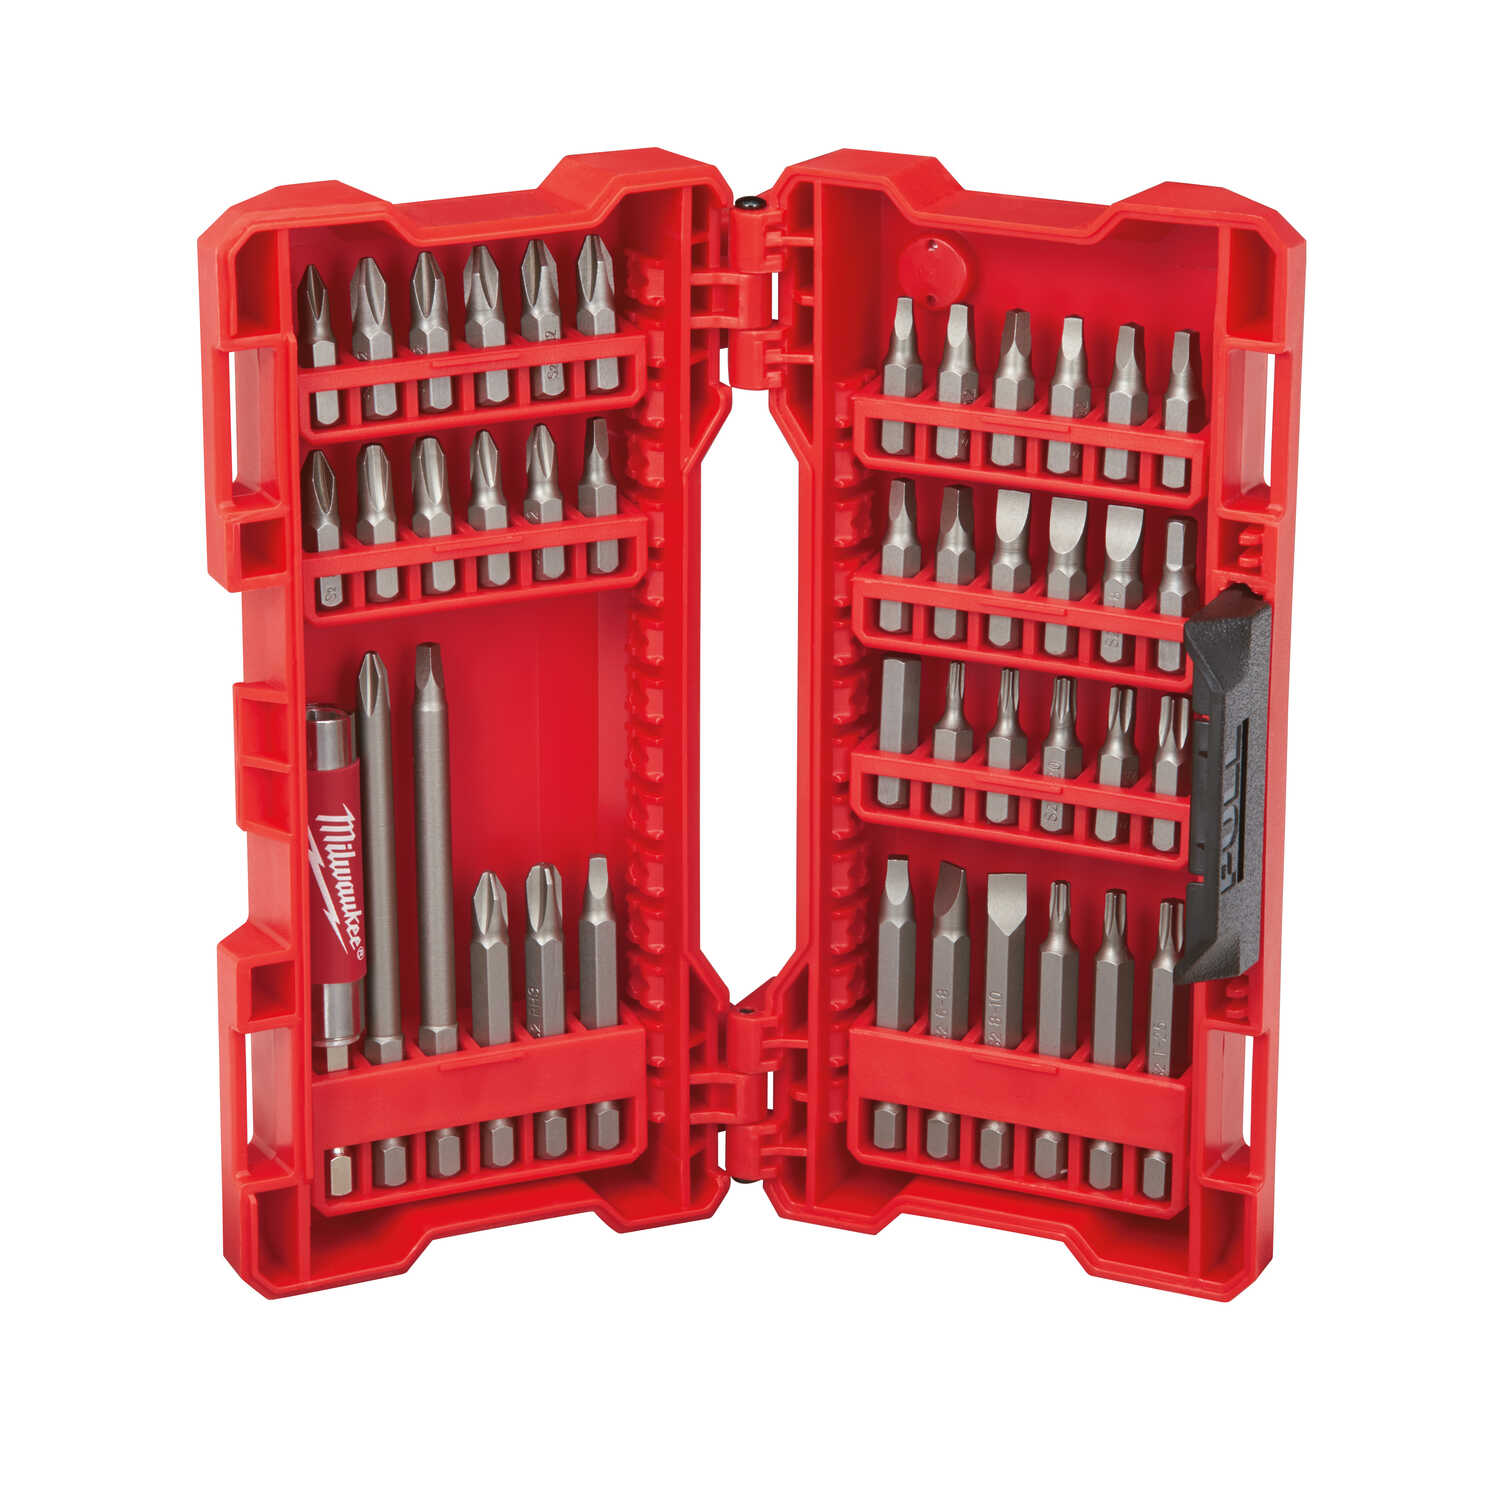 Milwaukee  SHOCKWAVE  Assorted  1-4 in. L Heavy Duty  Screwdriver Bit Set  S2 Tool Steel  1/4 in. He